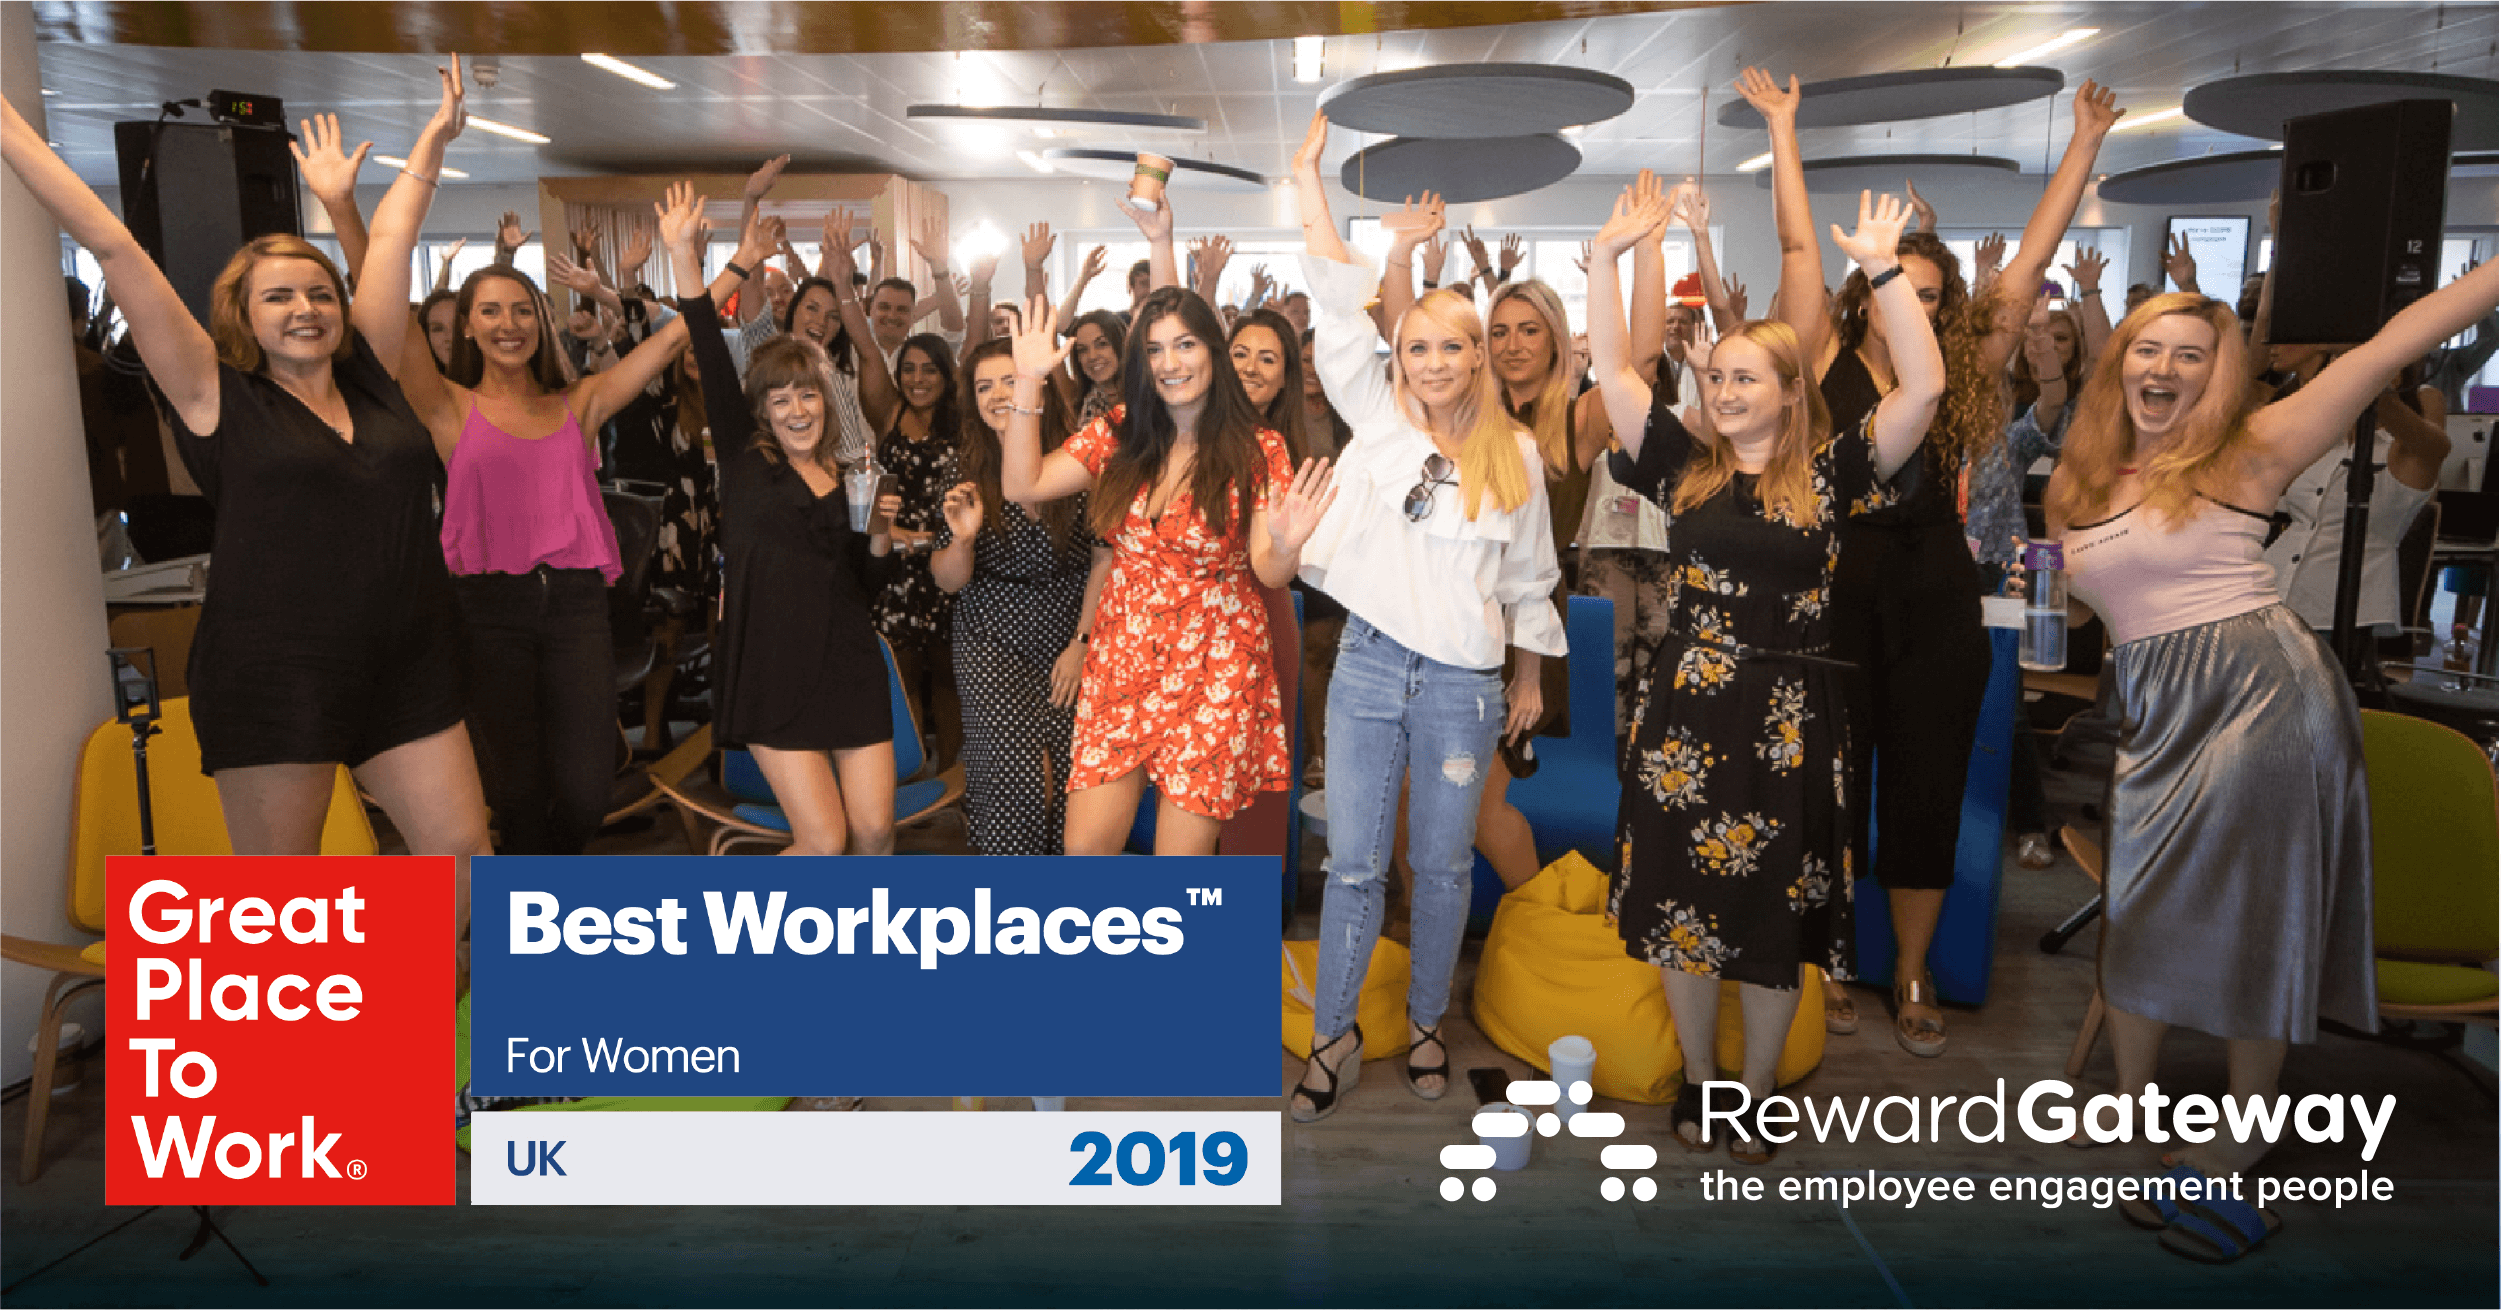 reward gateway best workplaces uk